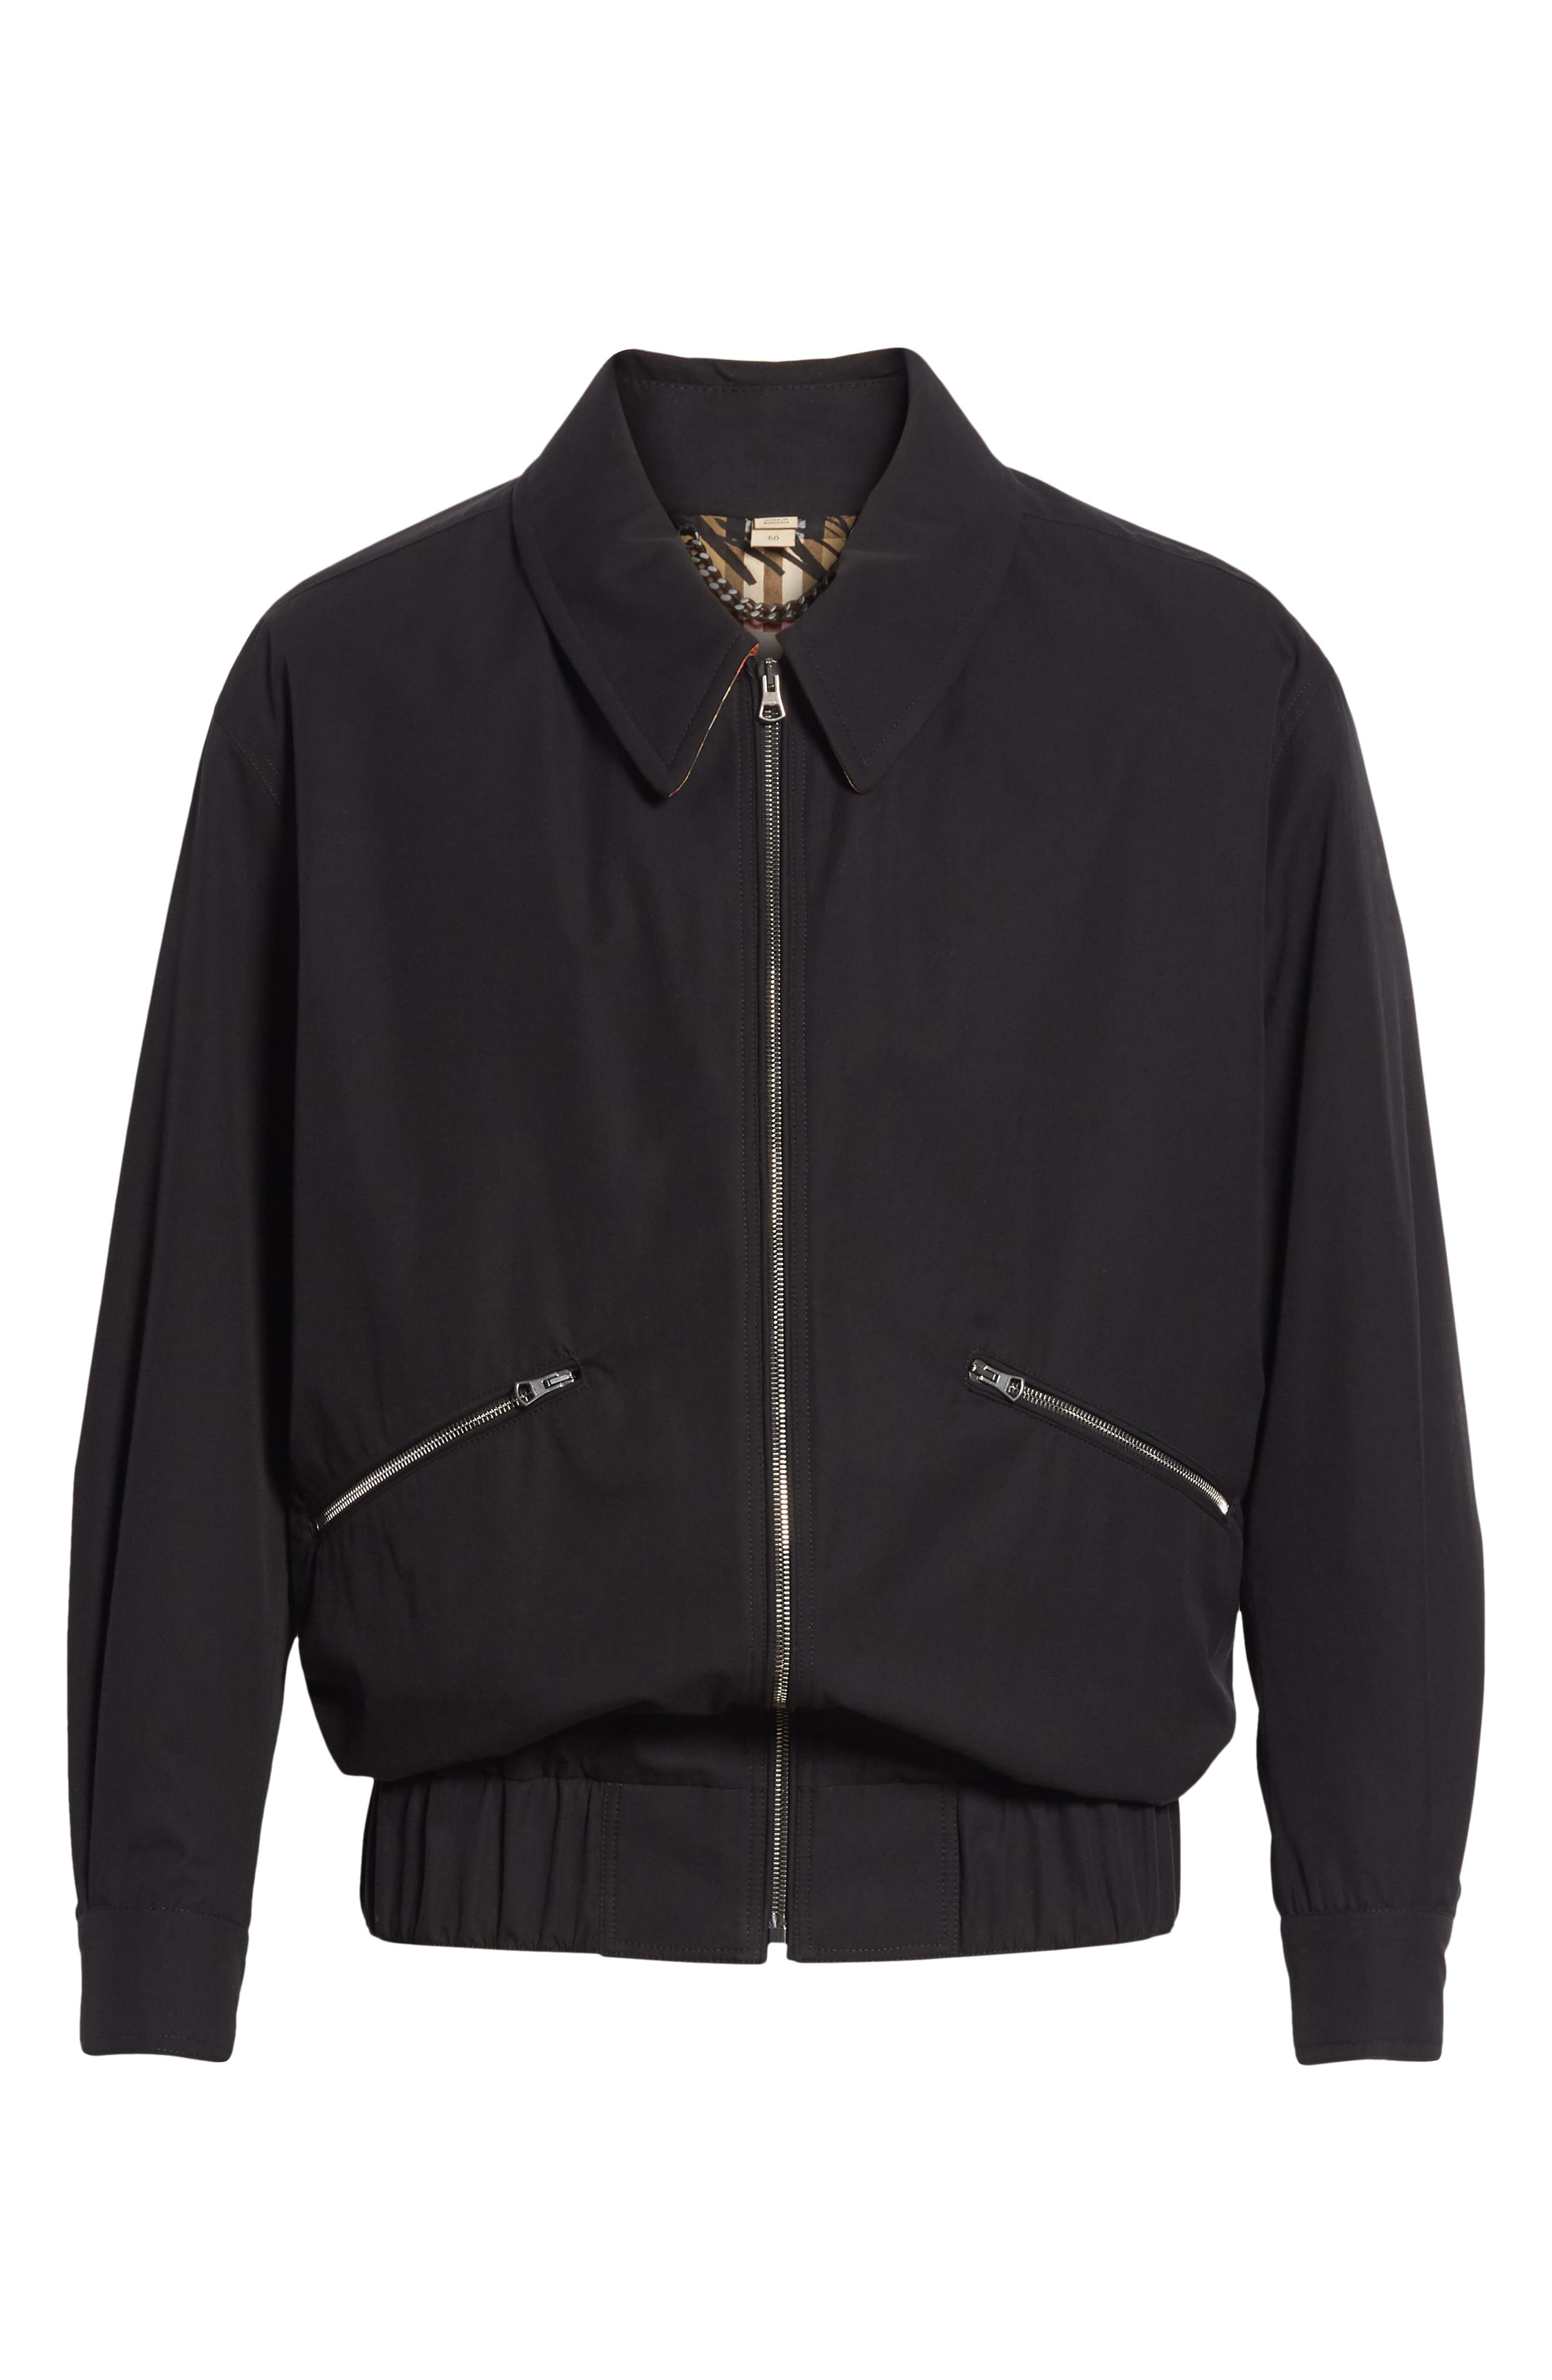 Loweswater Jacket,                             Alternate thumbnail 6, color,                             Black